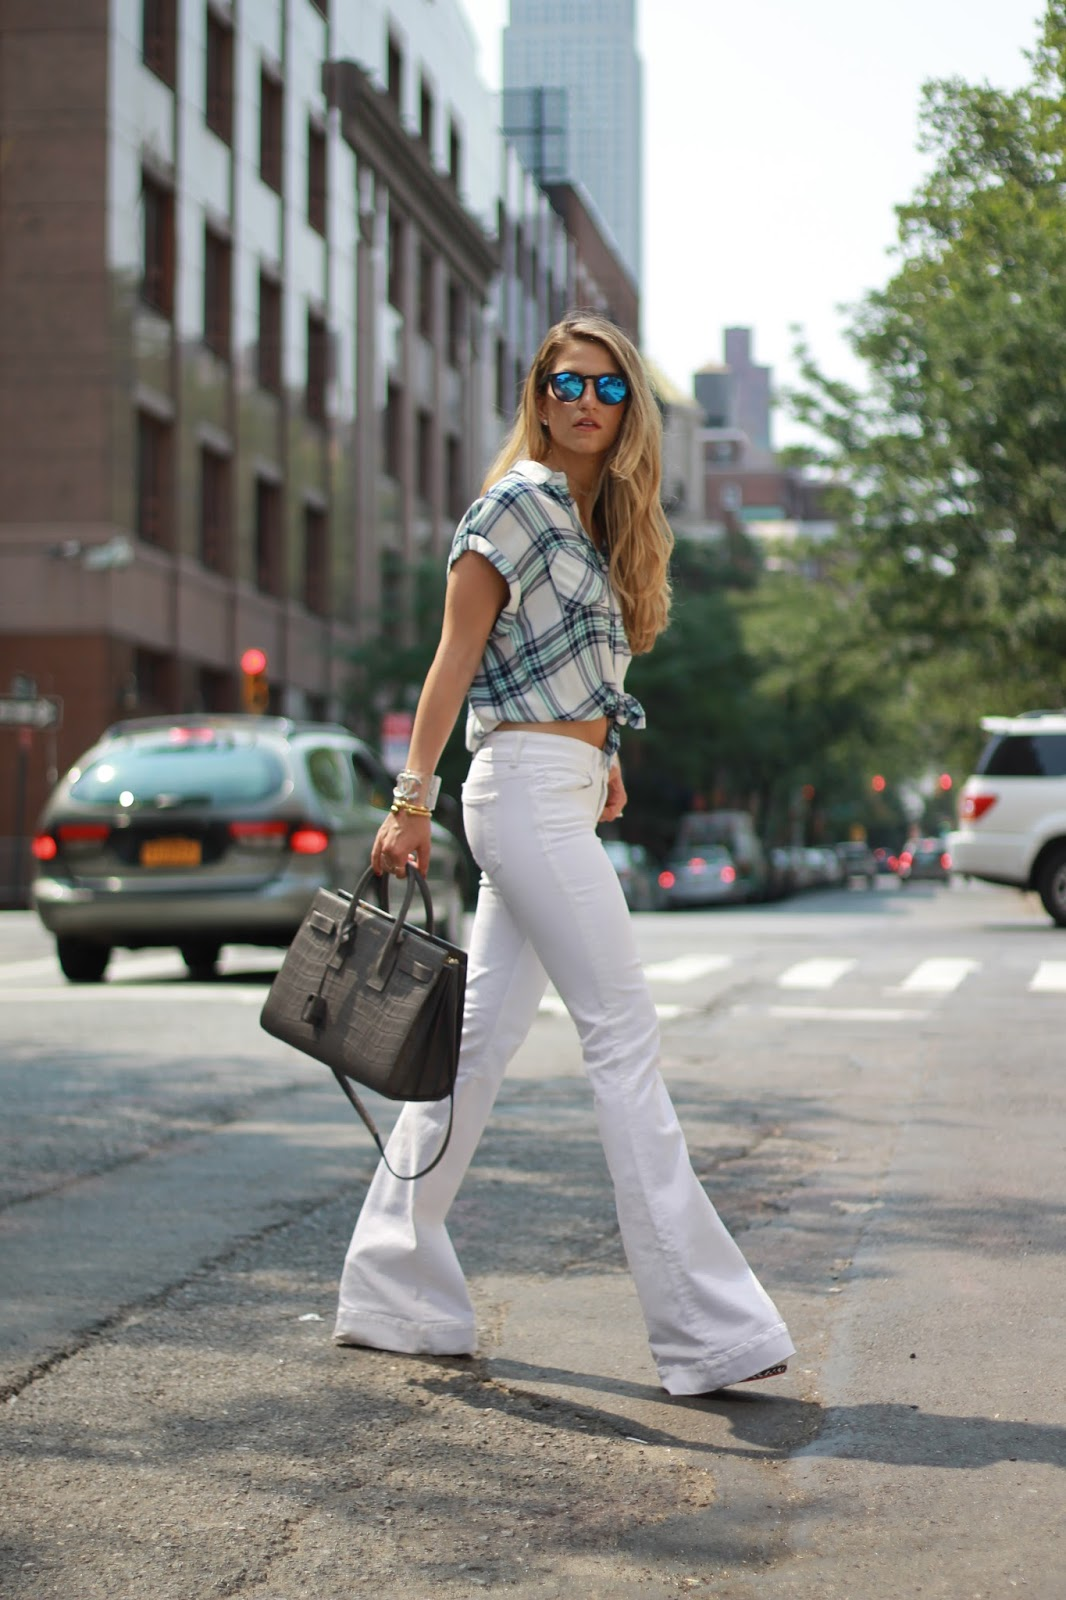 dressed for dreams in white wide leg pants, rails plaid shirt